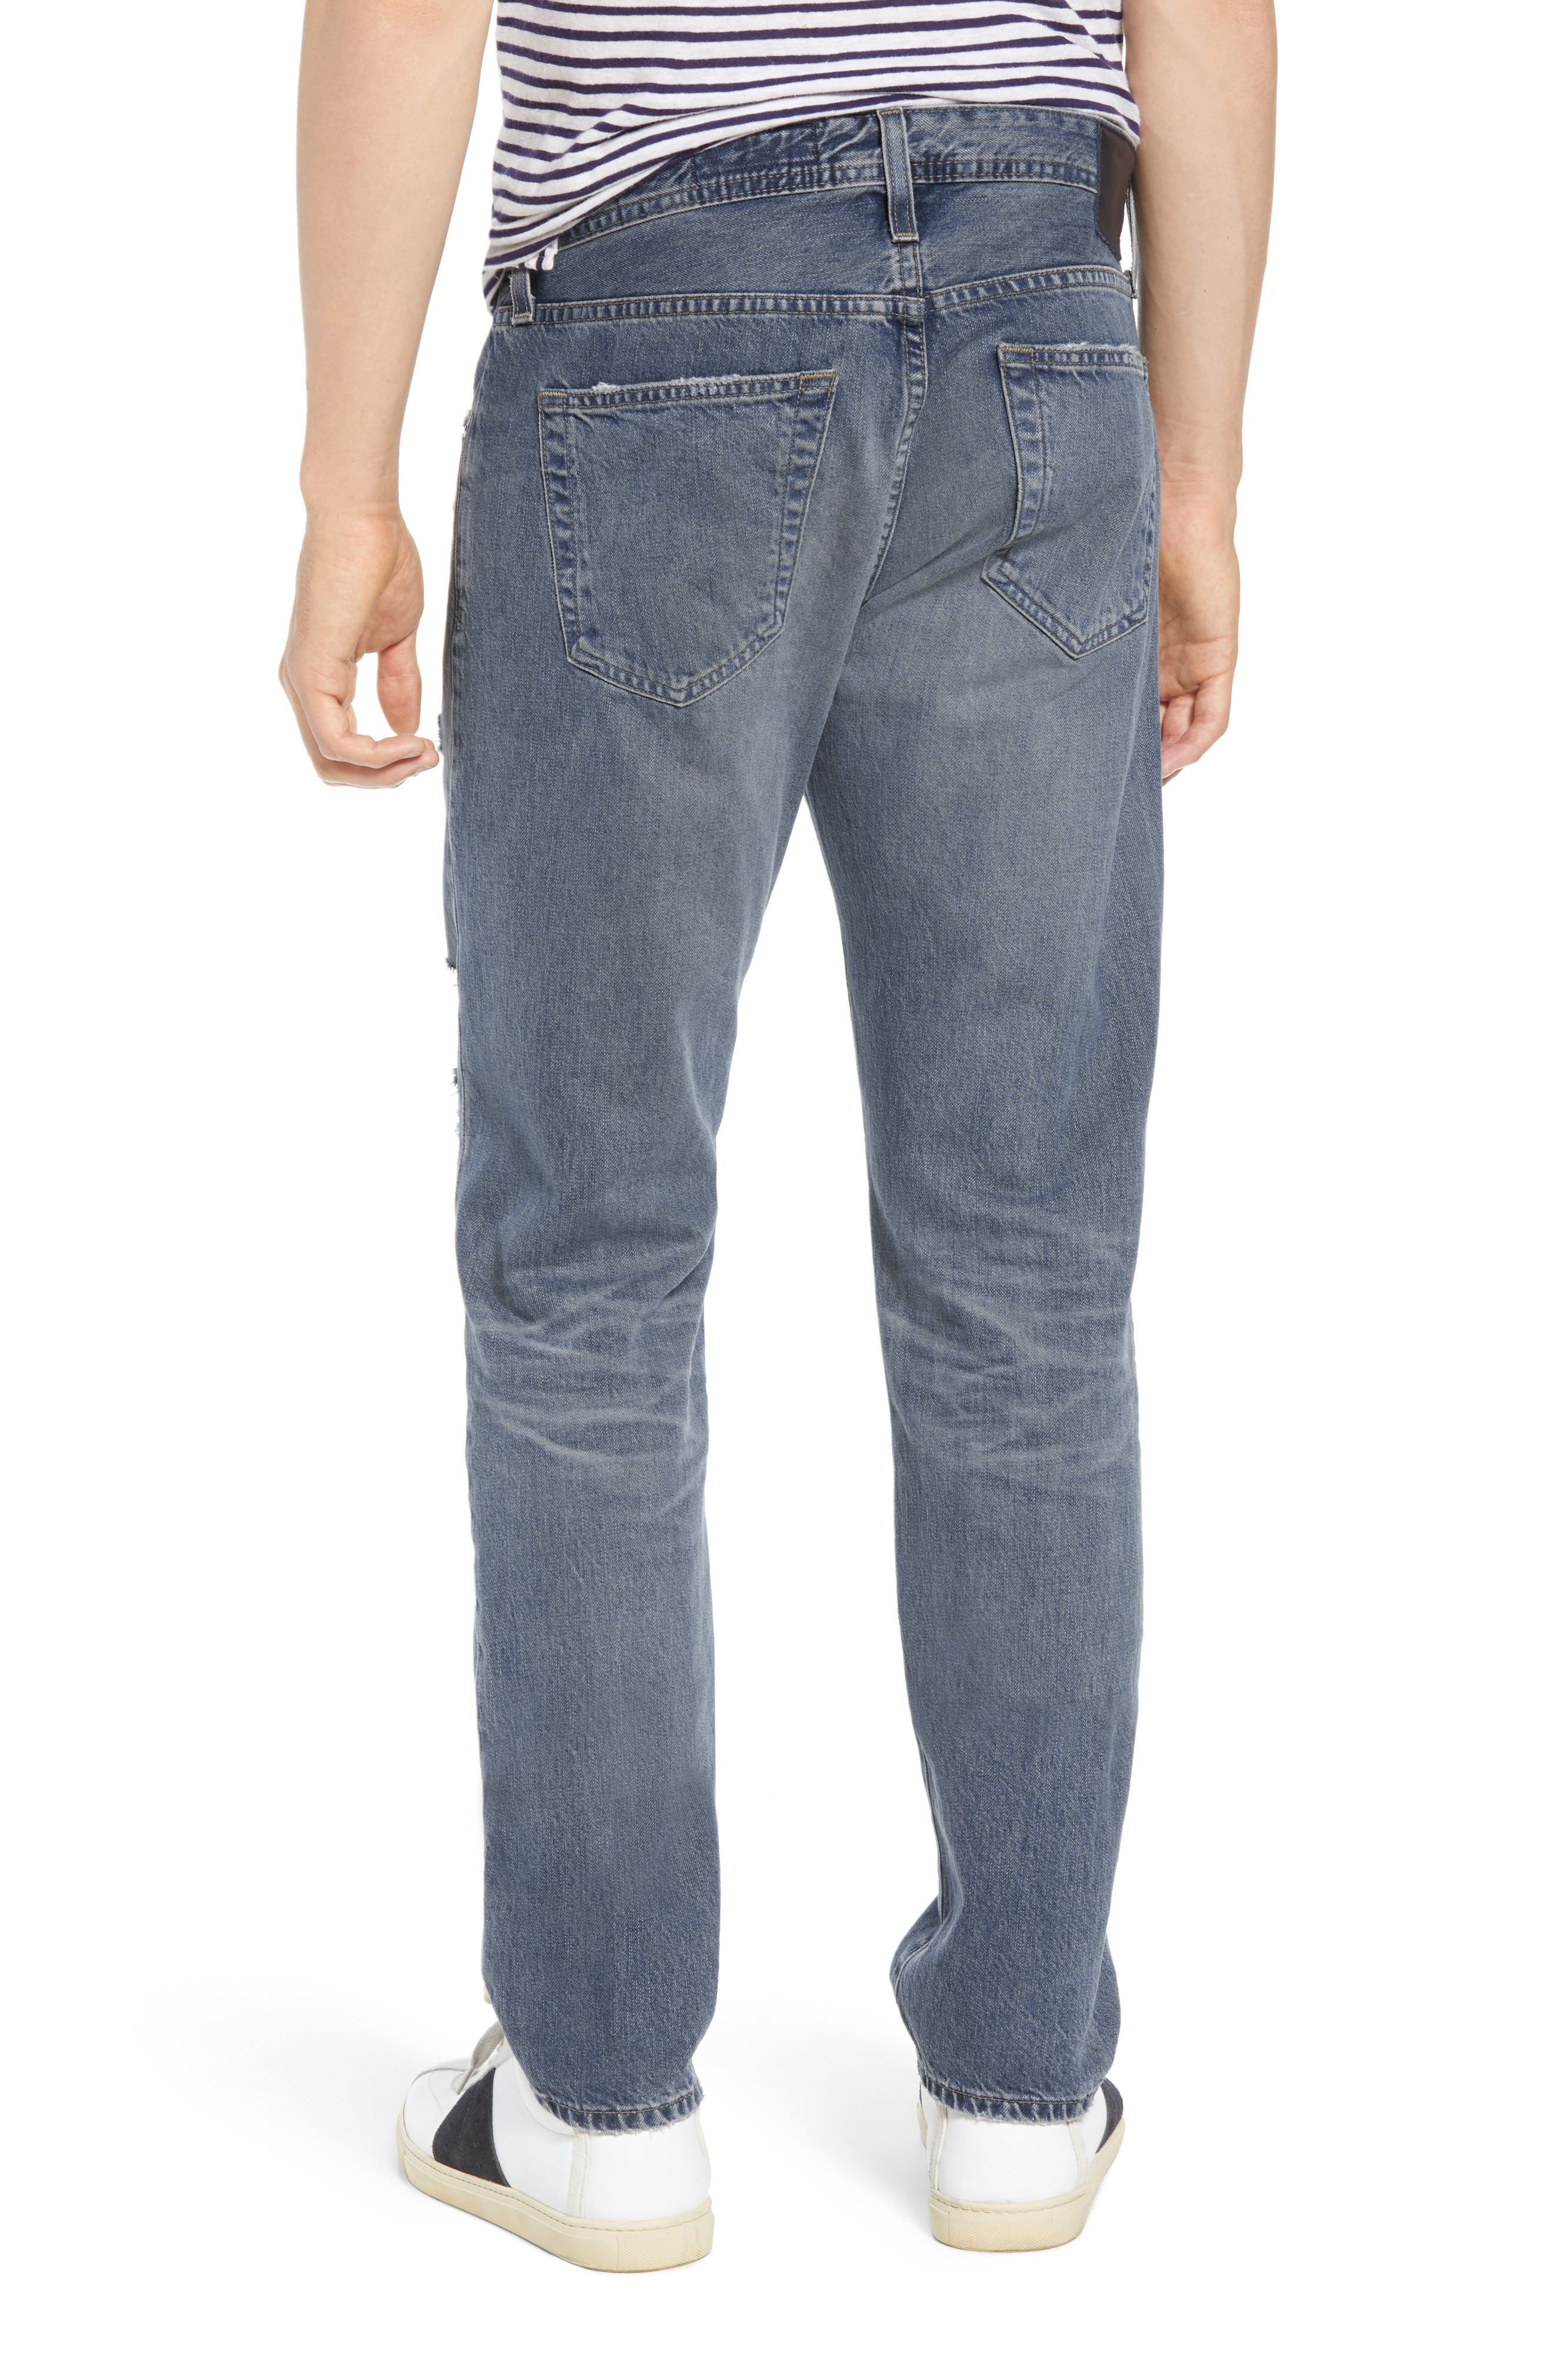 Tellis Slim Fit Jeans,                             Alternate thumbnail 2, color,                             18 YEARS UNDERWORLD